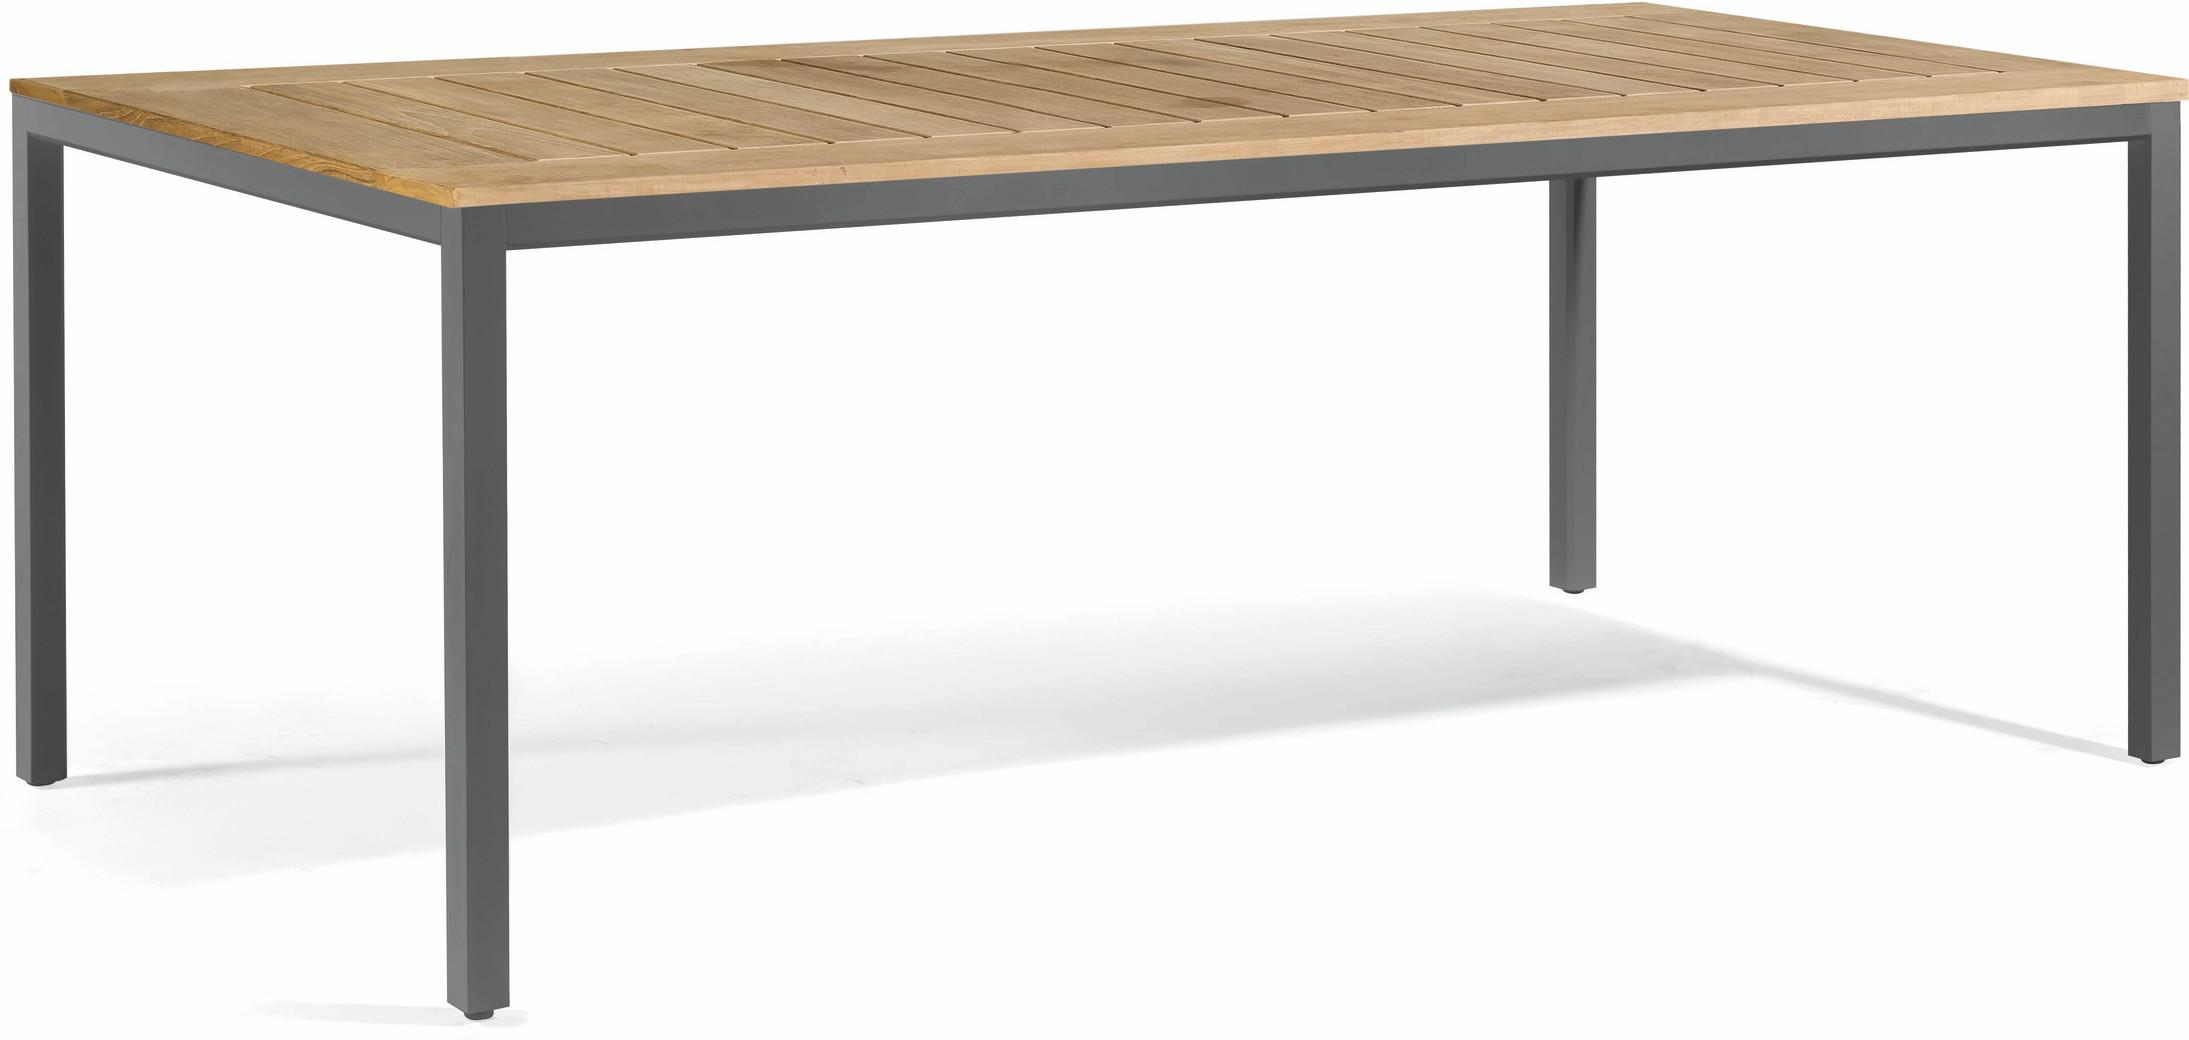 Quarto Dining table - lava - Teak 215